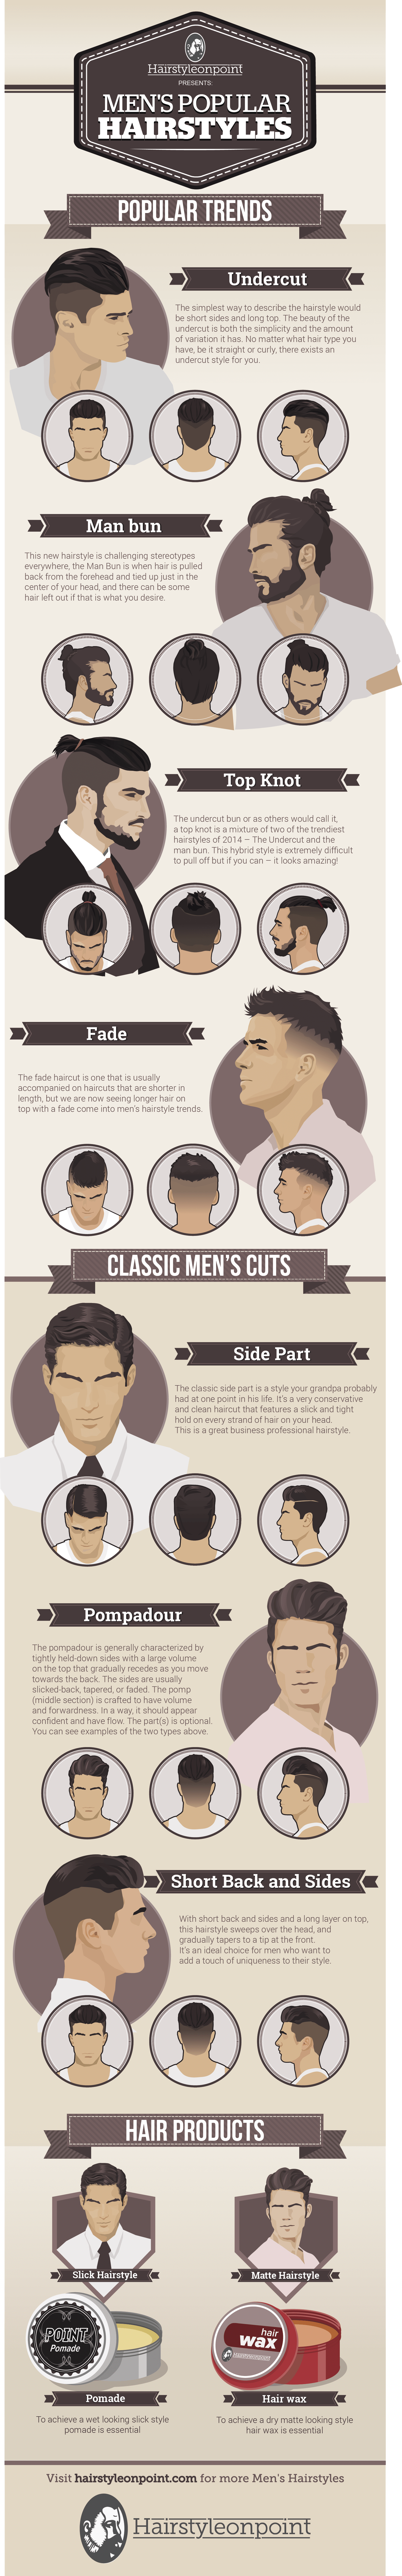 Most popular hairstyles for men in 2015 – Infographic